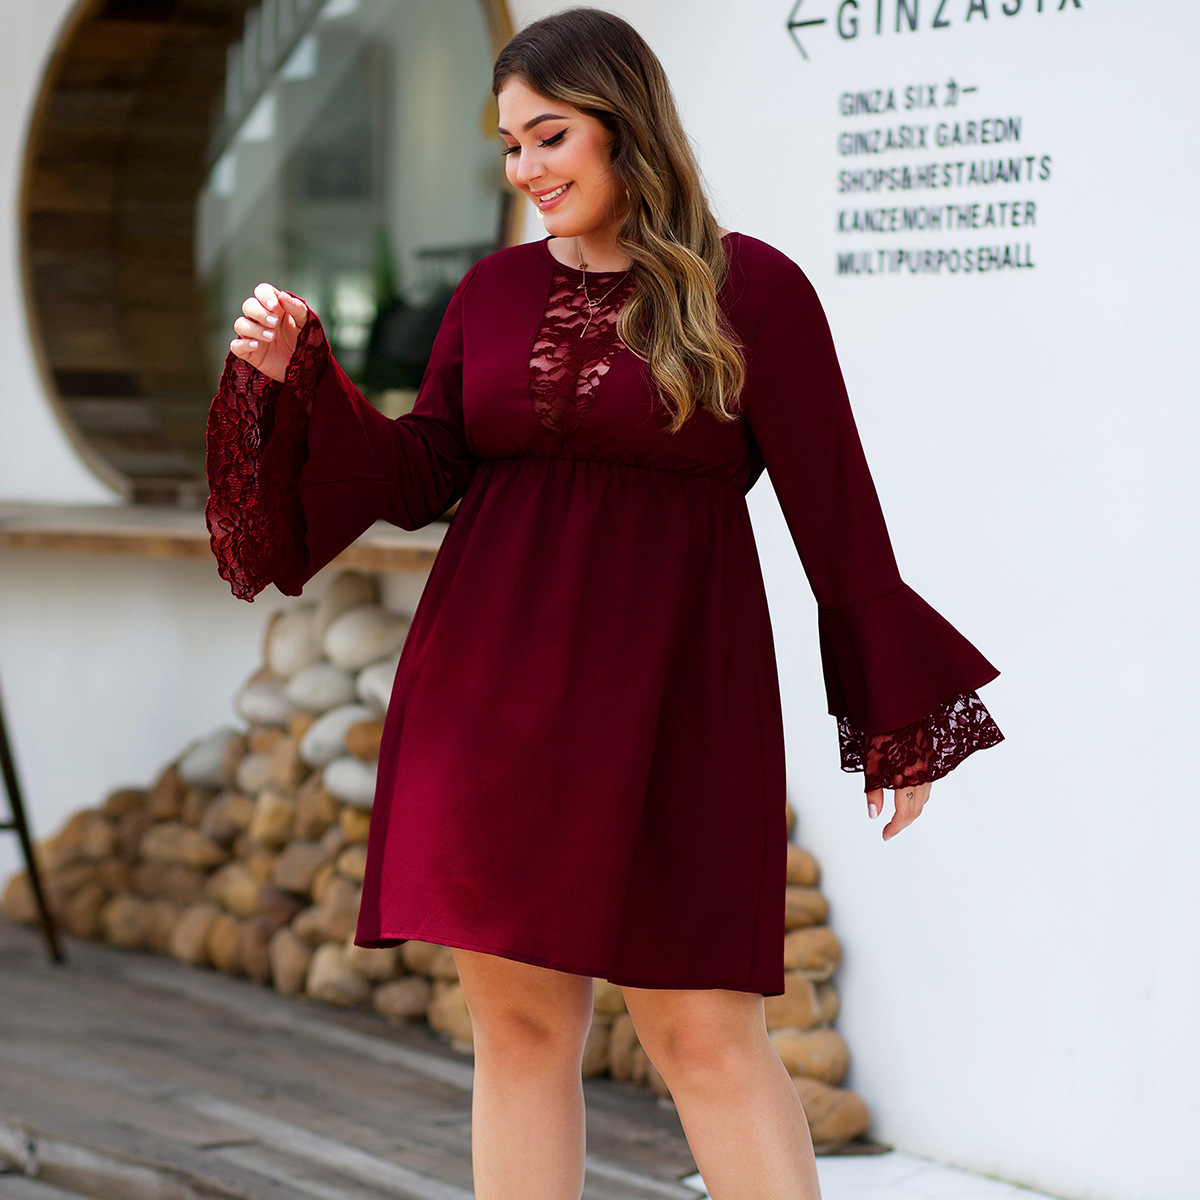 Elegant Burgundy Lace Cocktail Dresses A-Line Full Flare Sleeve See-Through Draped Short Formal Party Gowns Vestido Coctel 2020